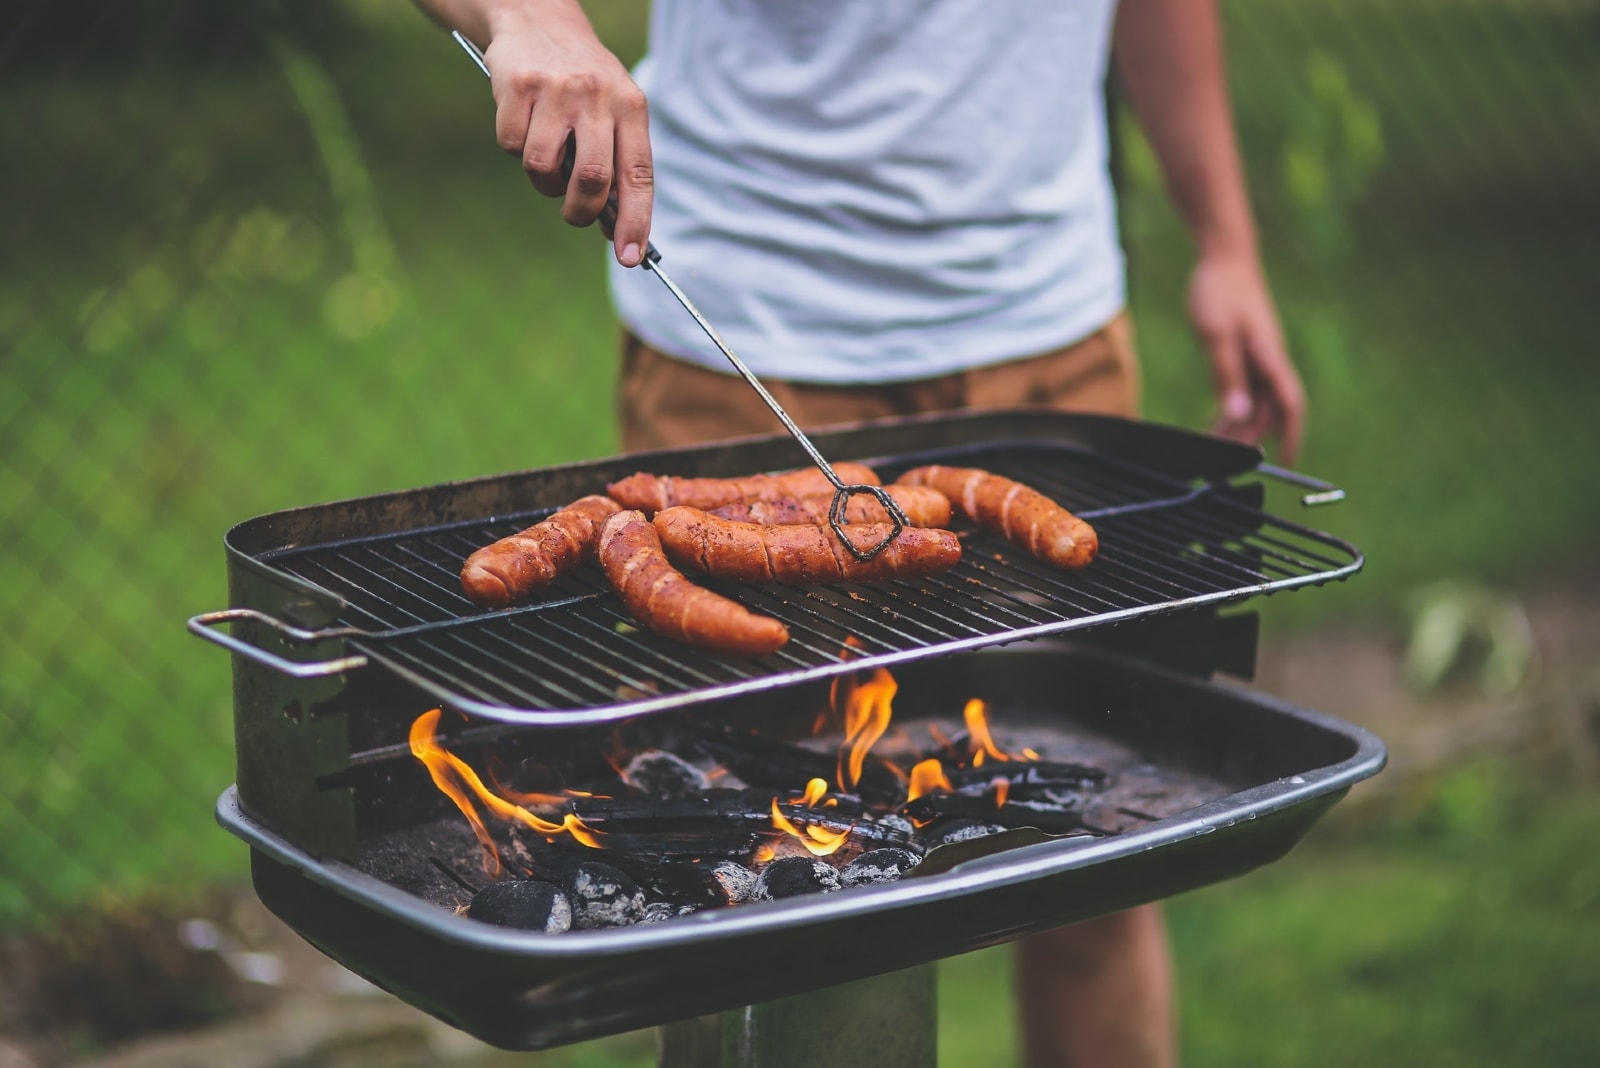 man grilling sausages on barbecue